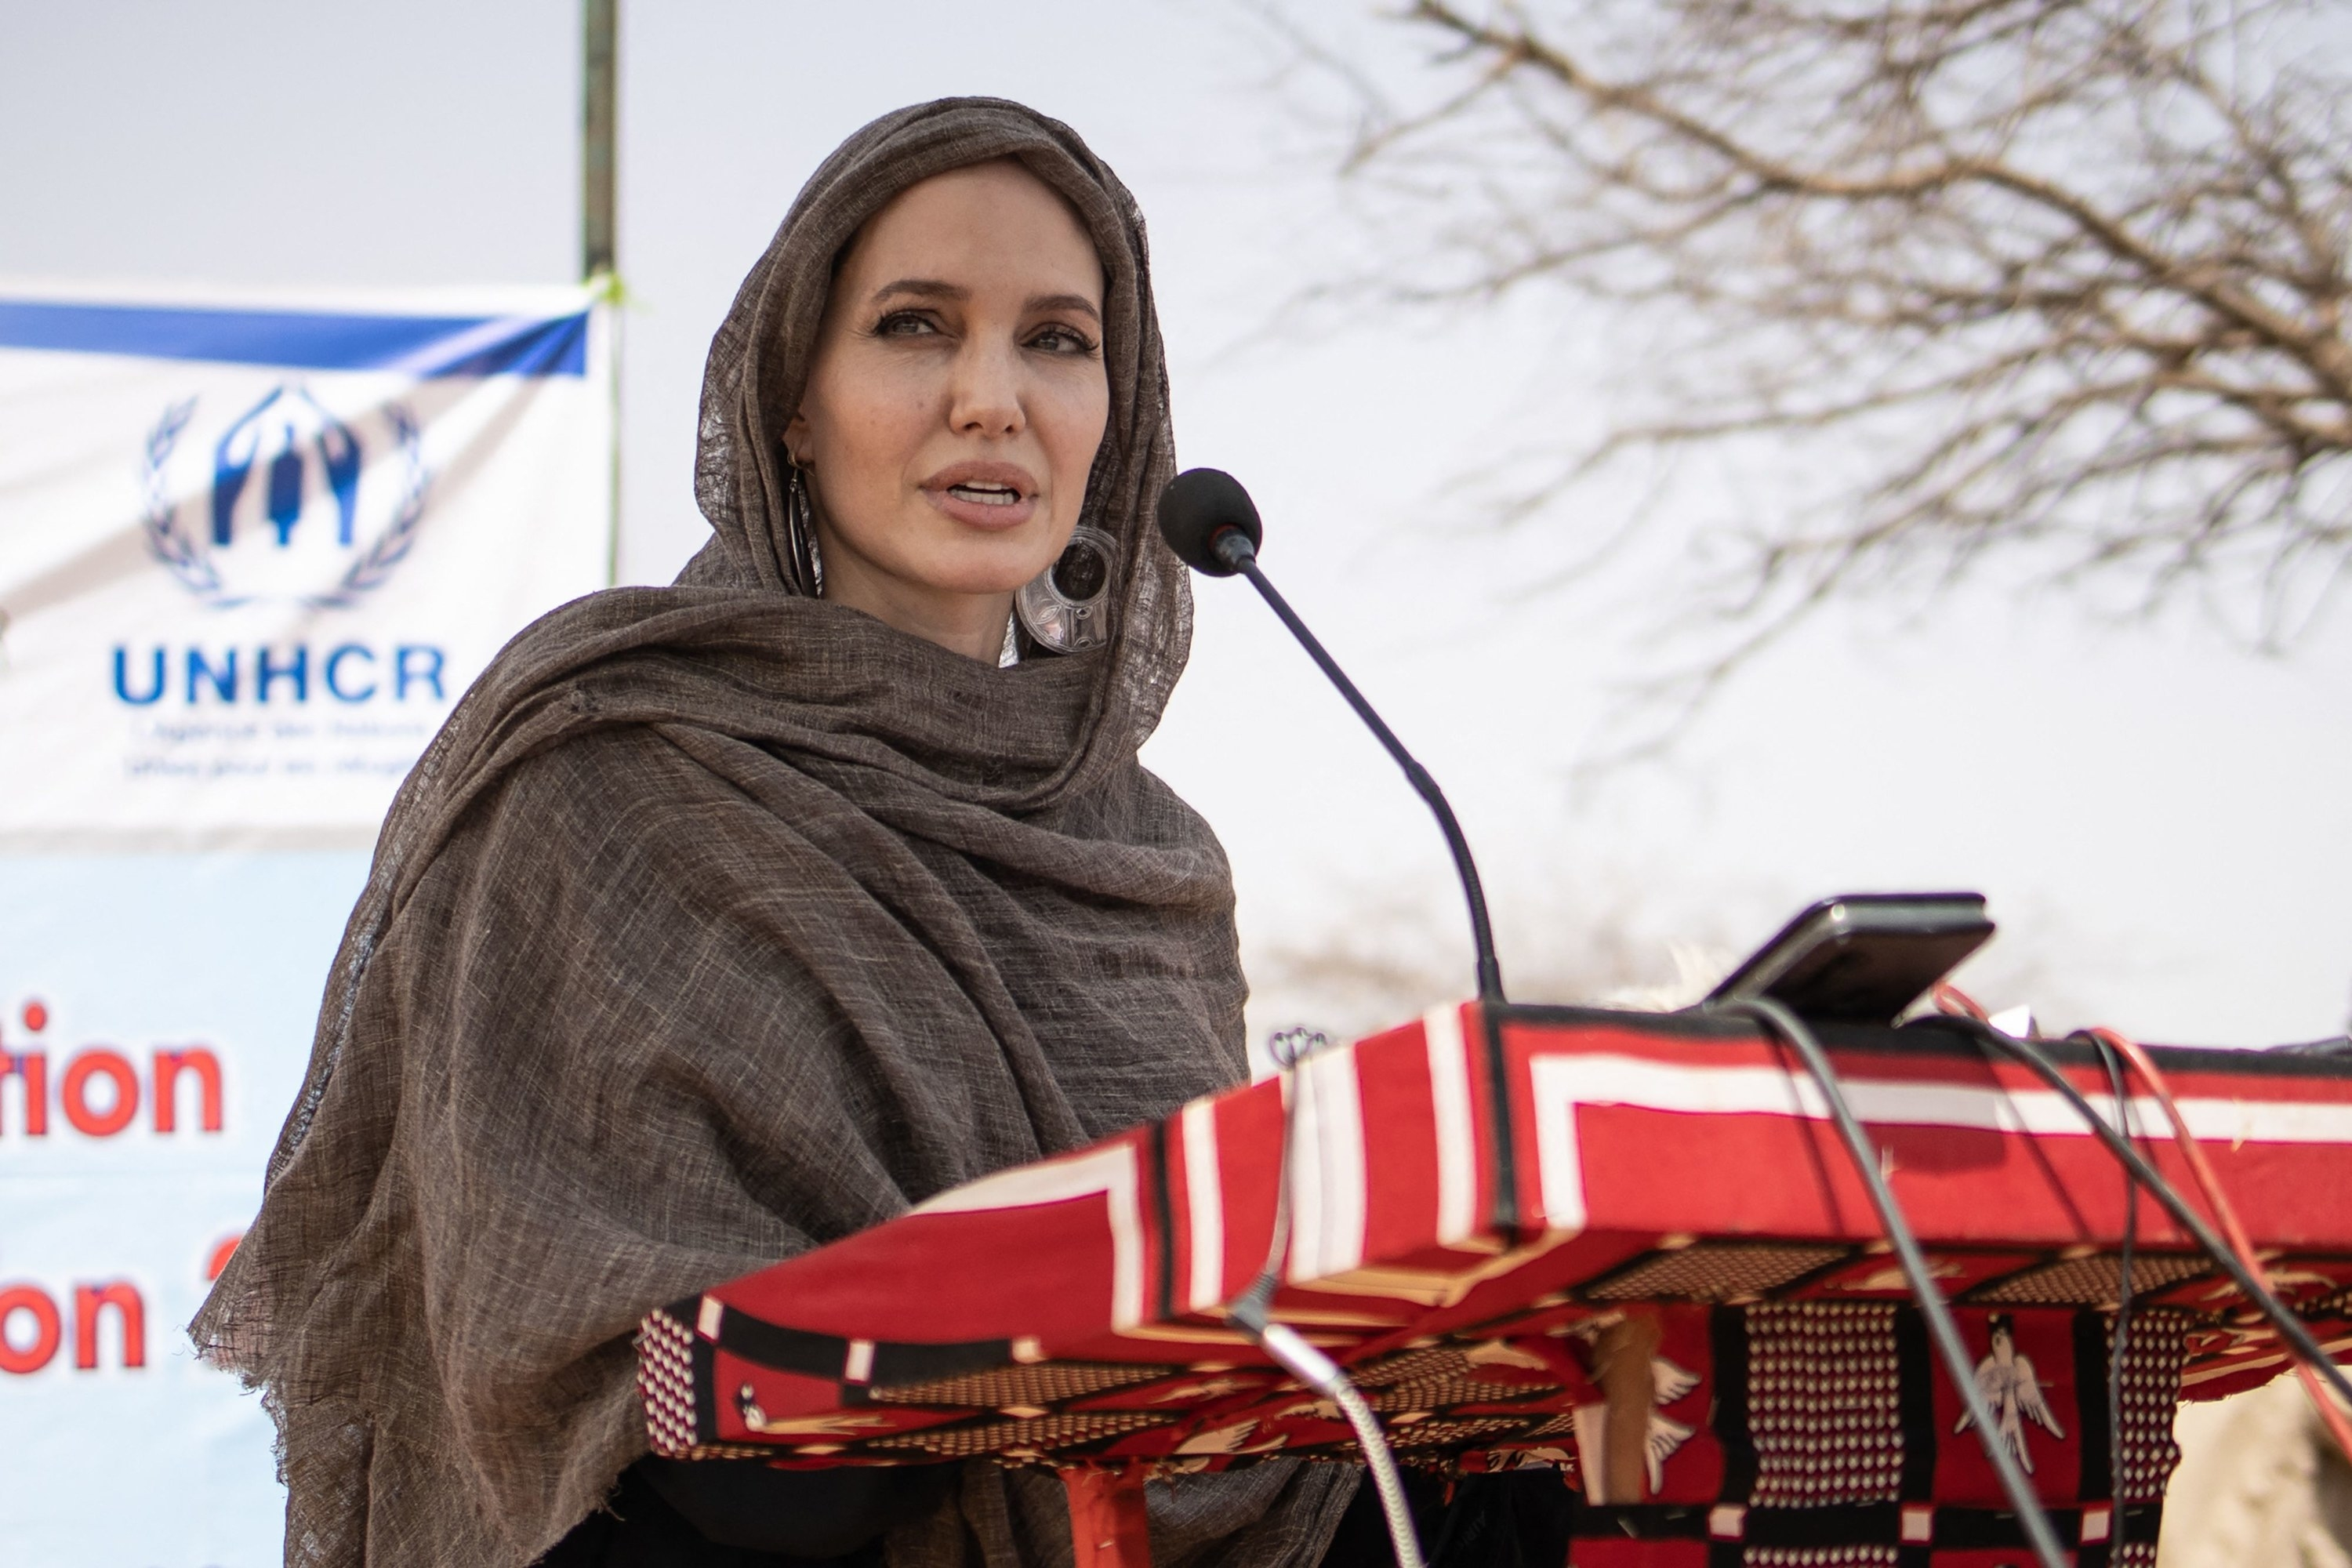 Angelina Jolie in a scarf and head covering speaking at a podium